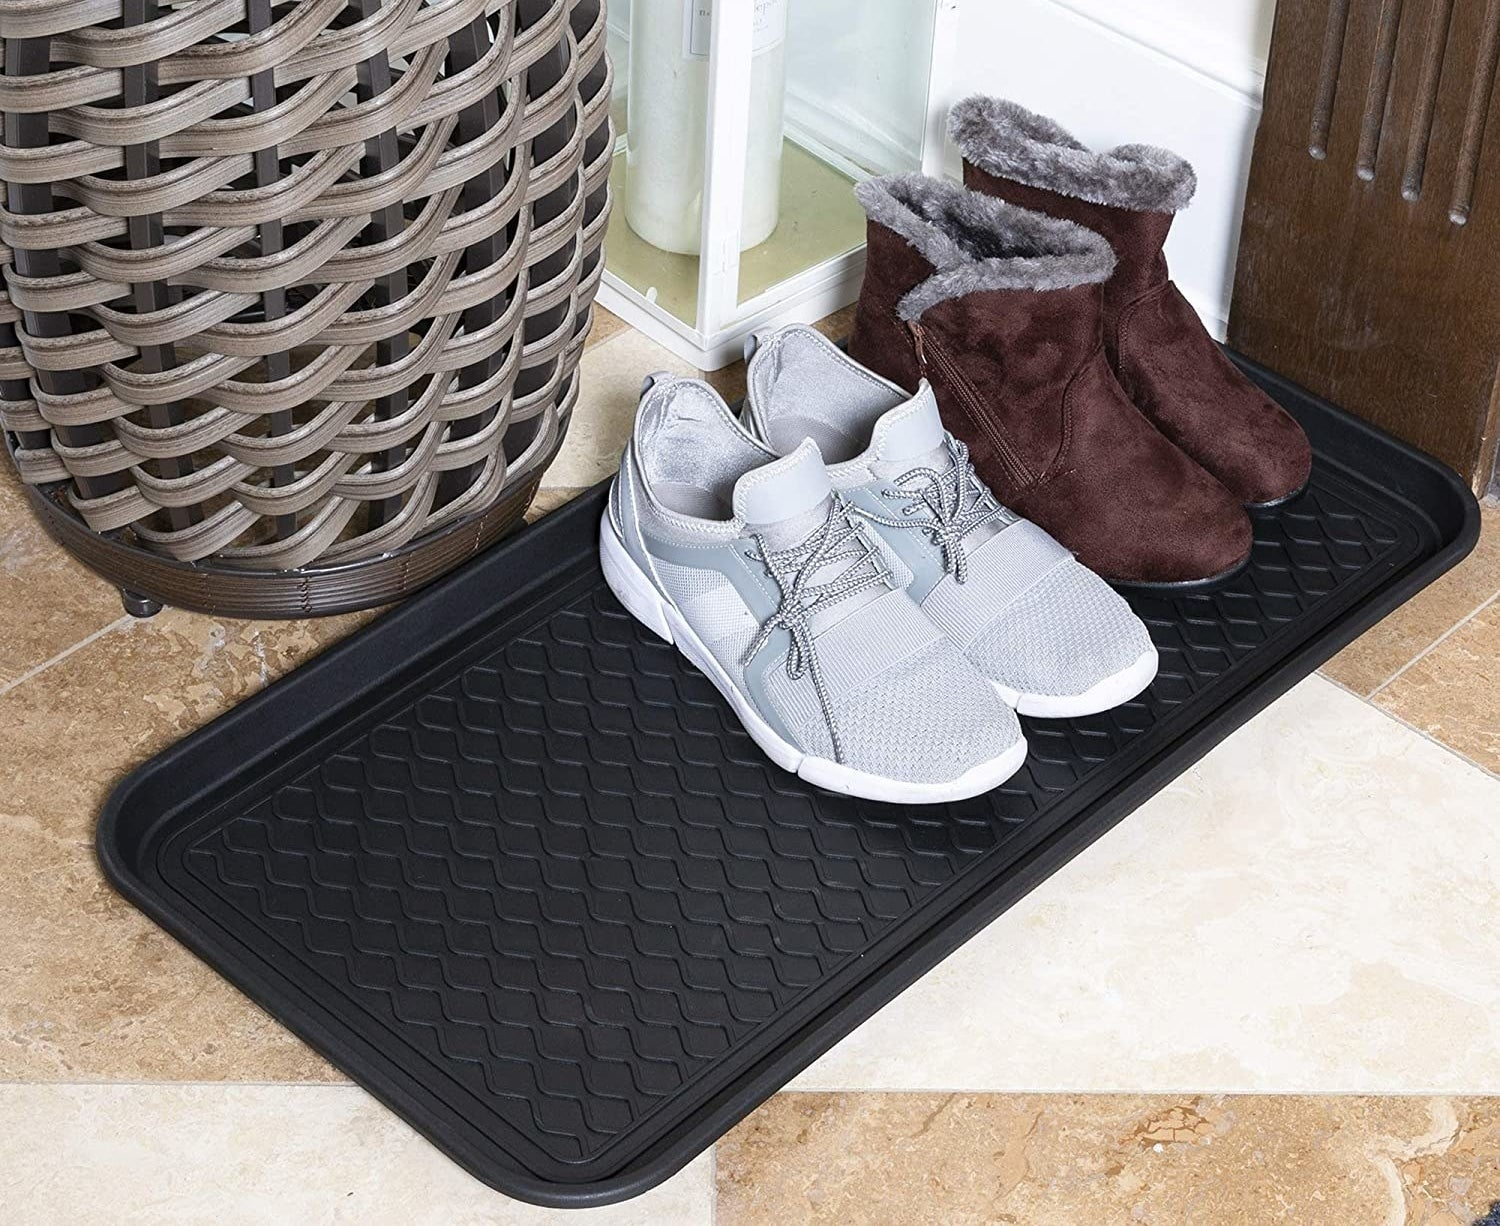 The tray with boots and sneakers on top of it